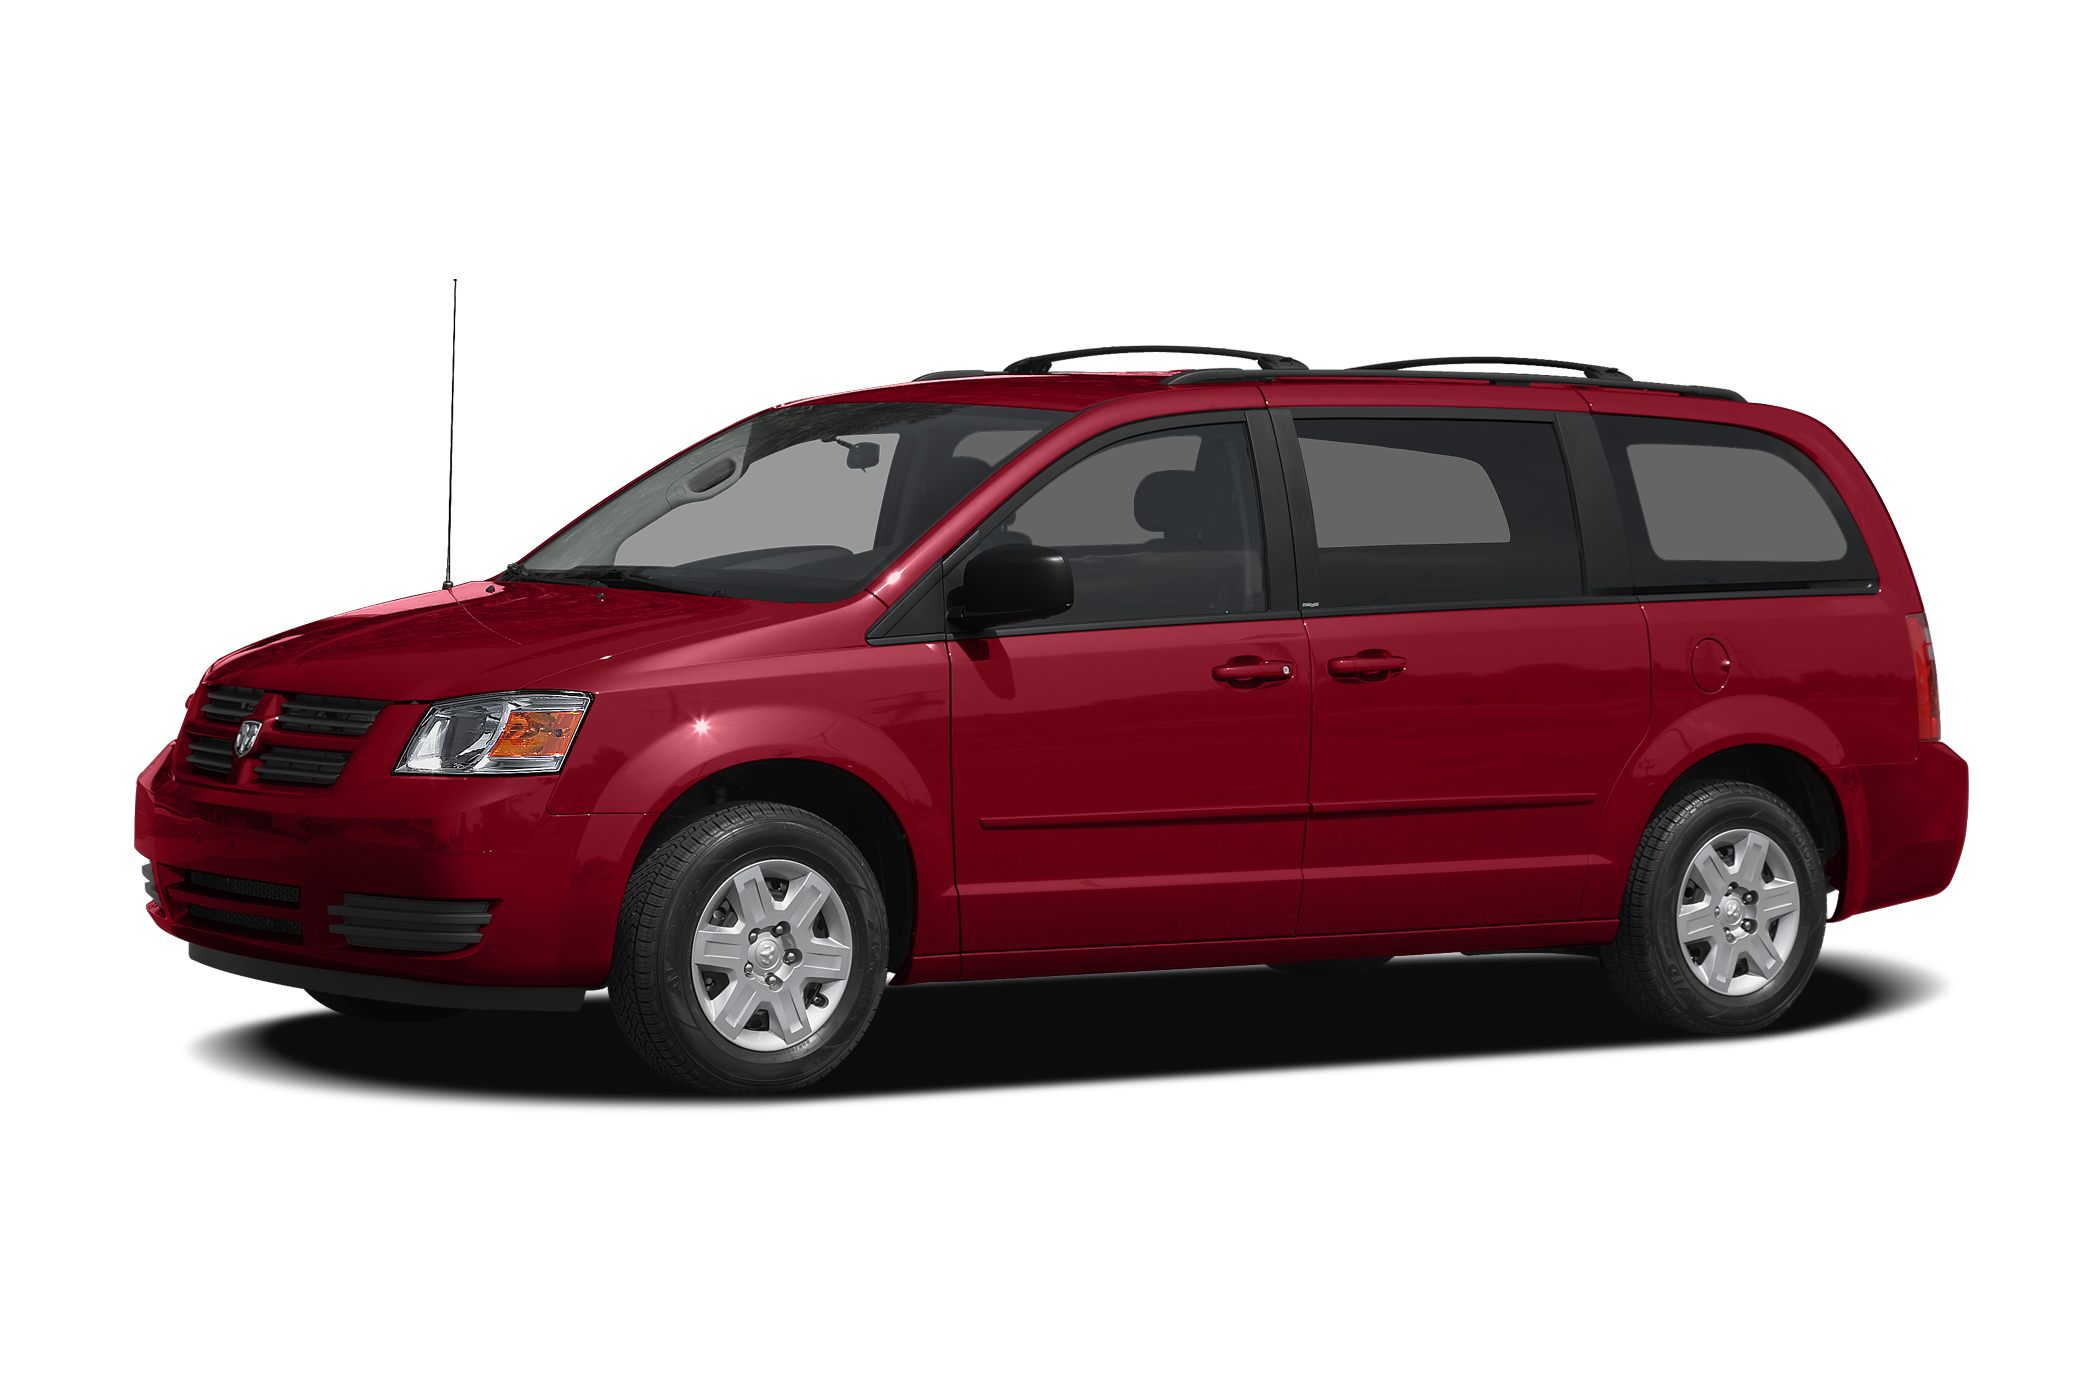 2009 Dodge Grand Caravan SXT 1 OWNER NO ACCIDENTS REPORTED TO AUTOCHECK 25TH ANNIVERSARY